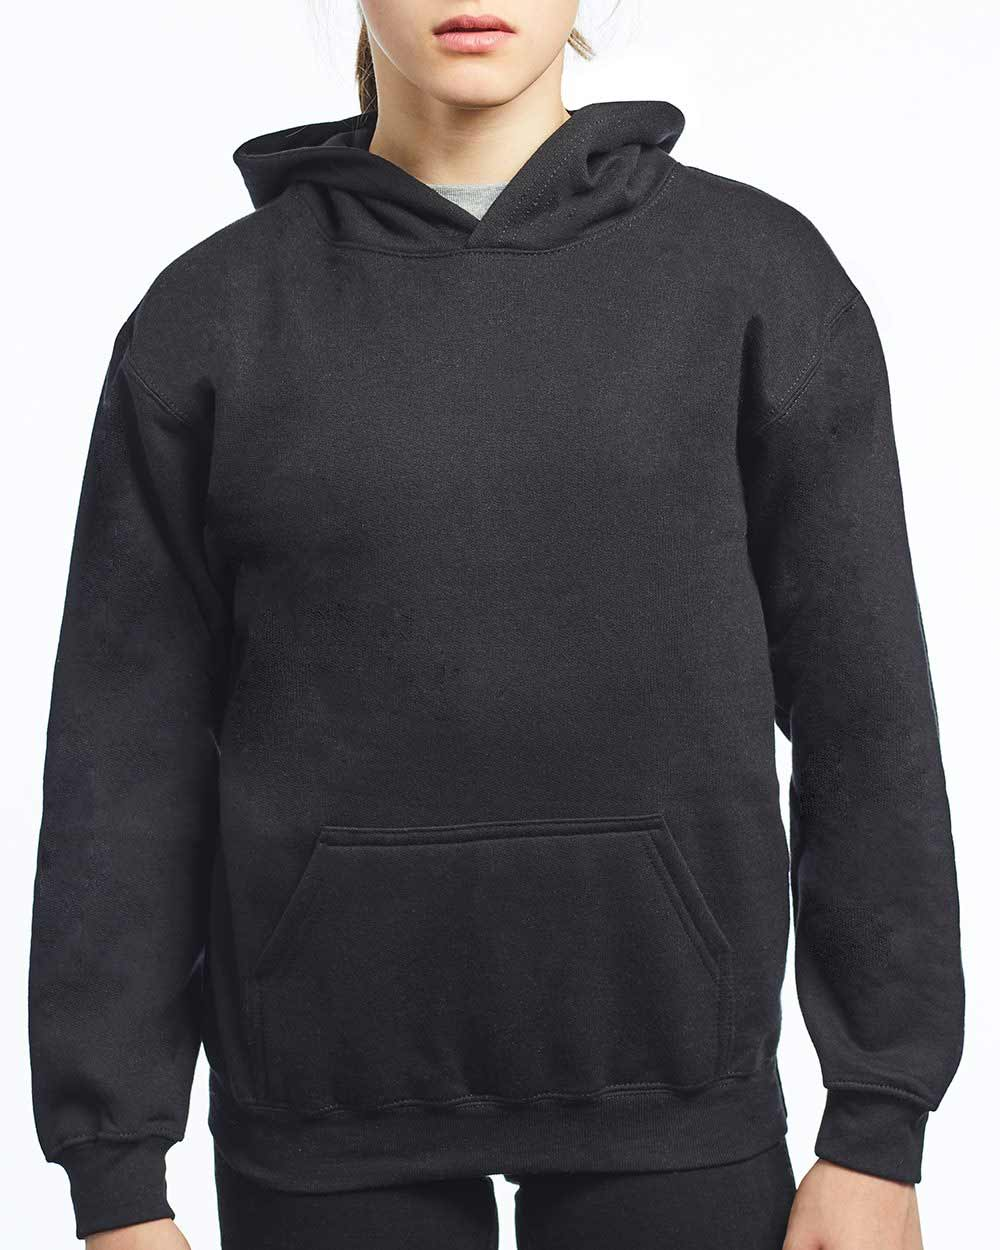 M&O Knits 3322 - Youth Fleece Pullover Hoodie